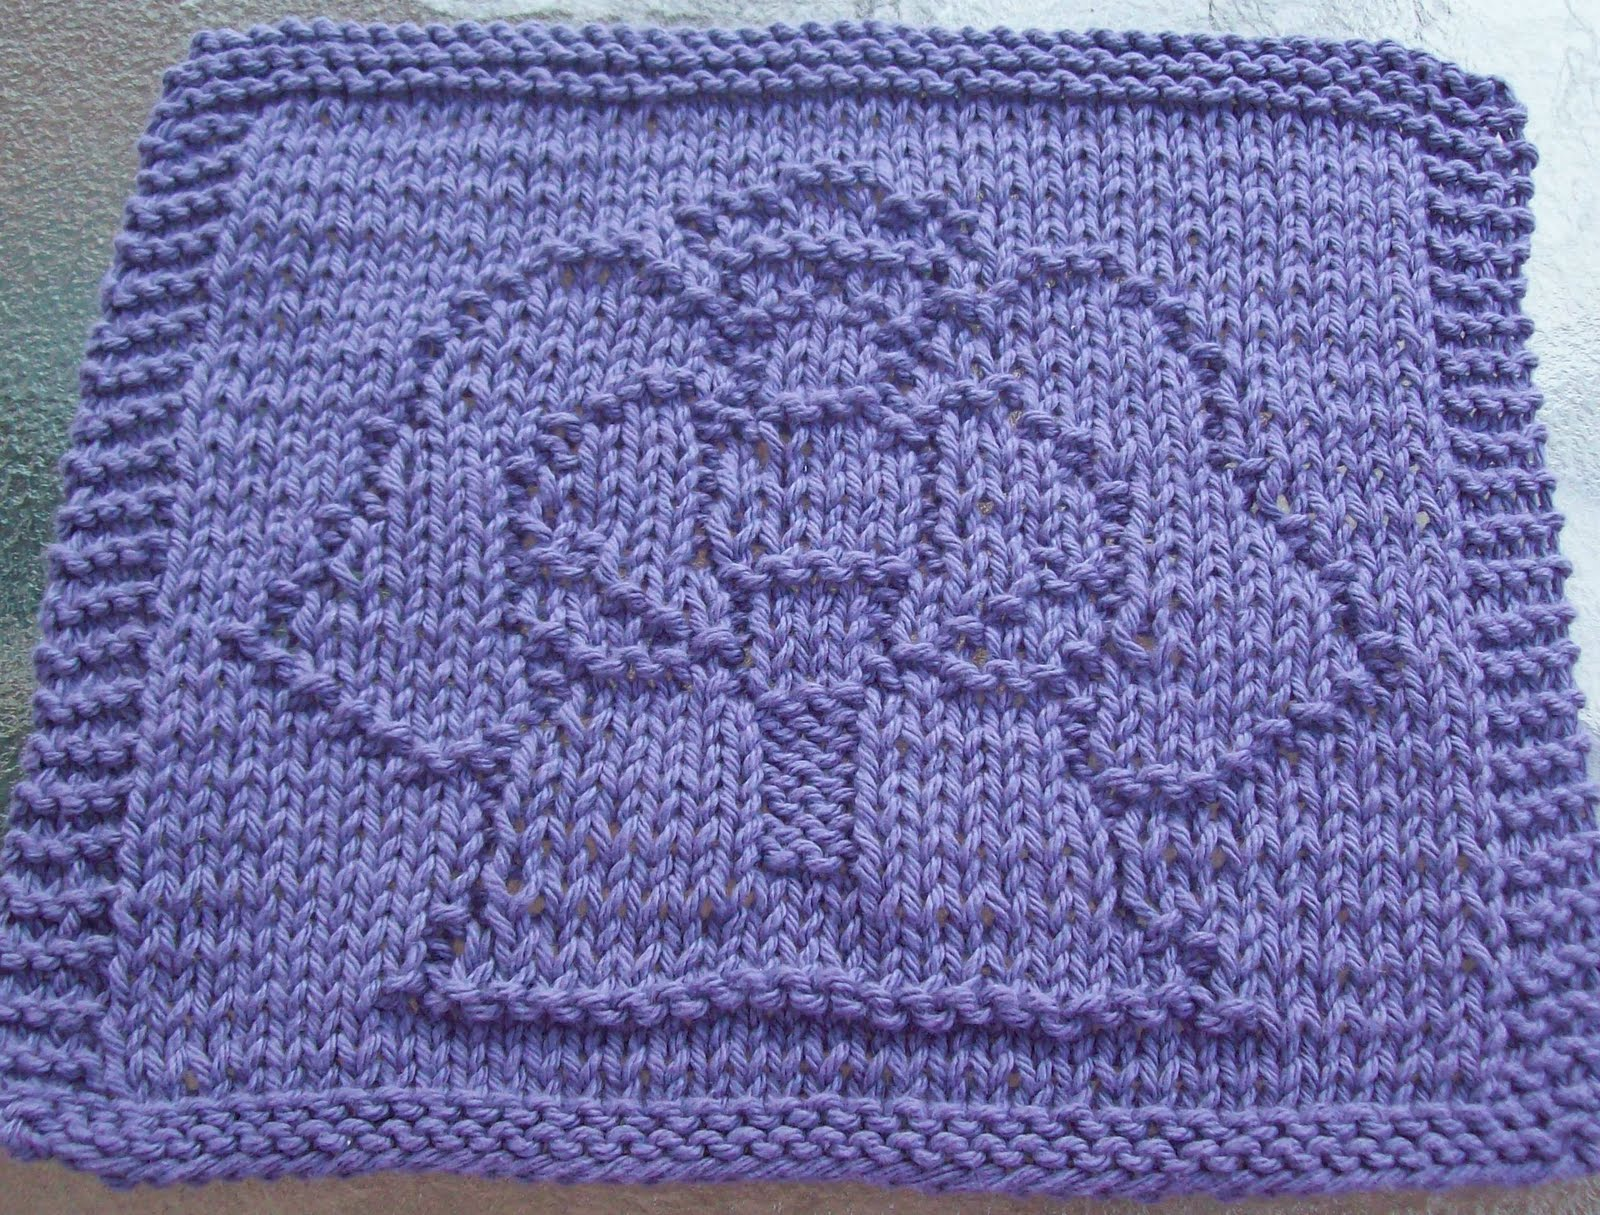 Knitting Pattern Angel Top : DigKnitty Designs: Angel Knitting Knit Dishcloth Pattern